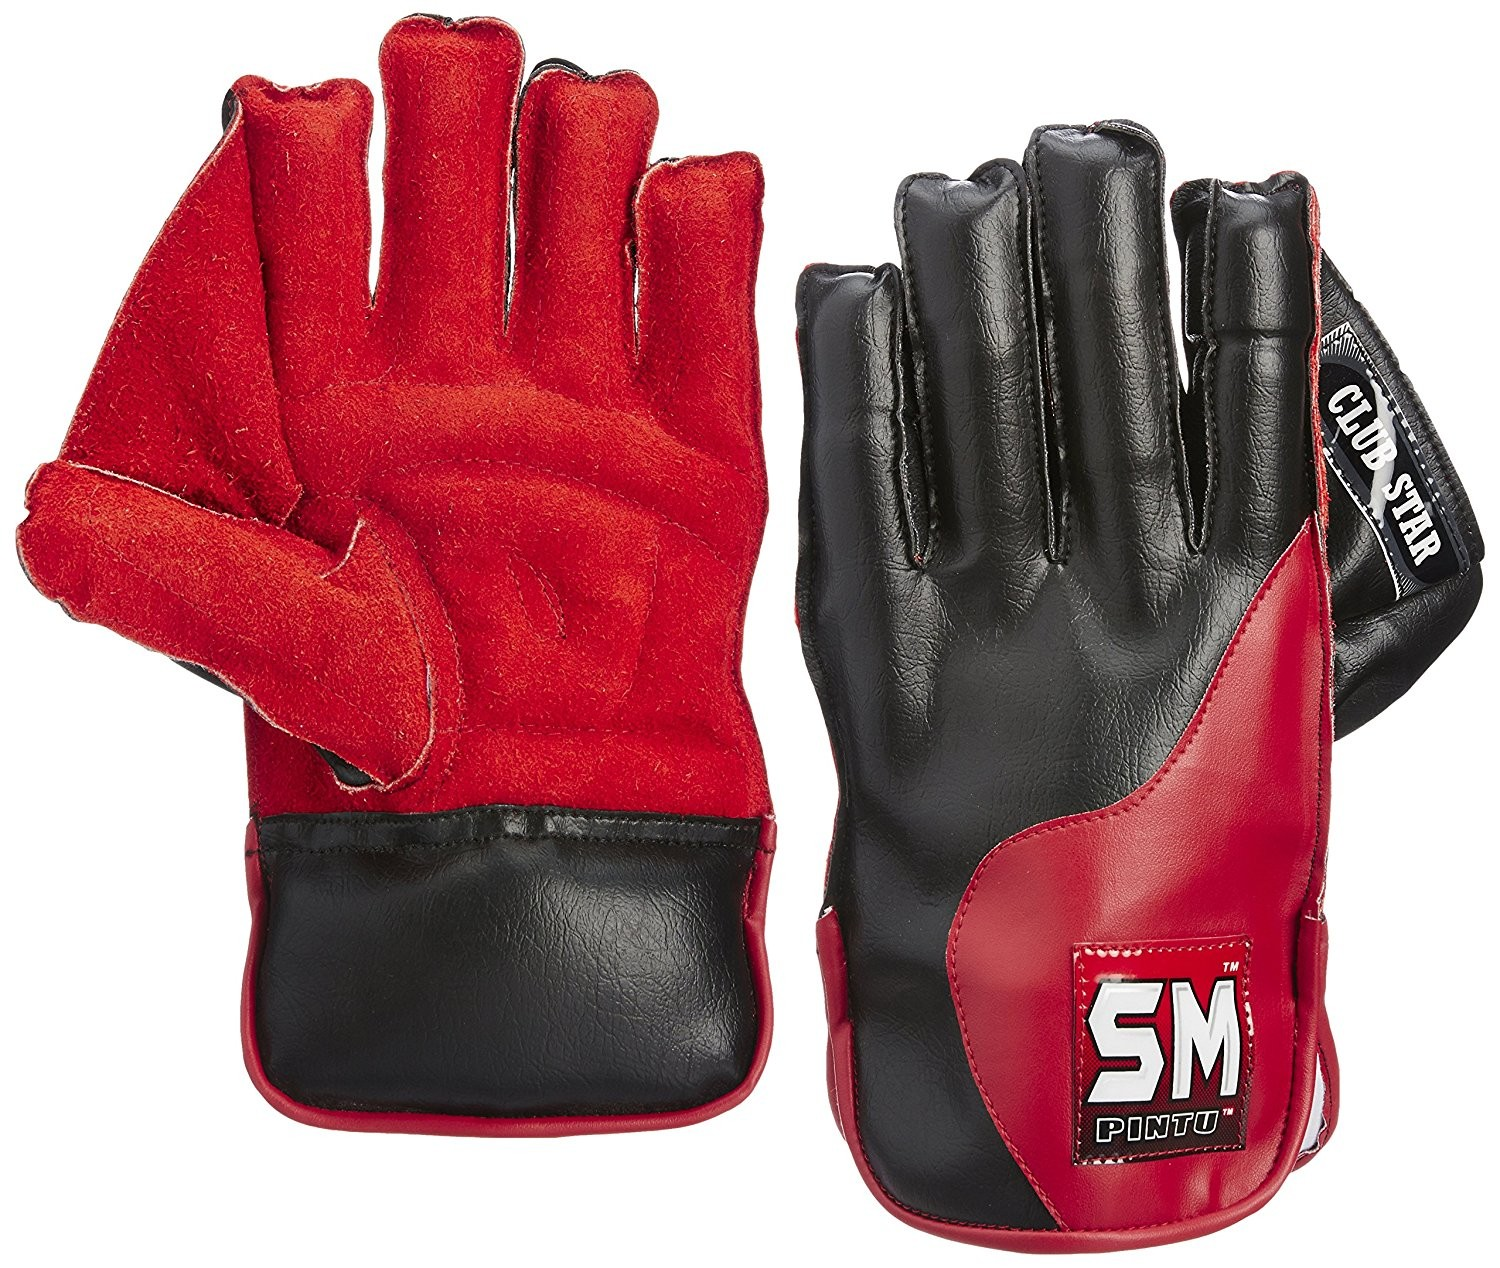 SM Club Star Wicket Keeping Gloves